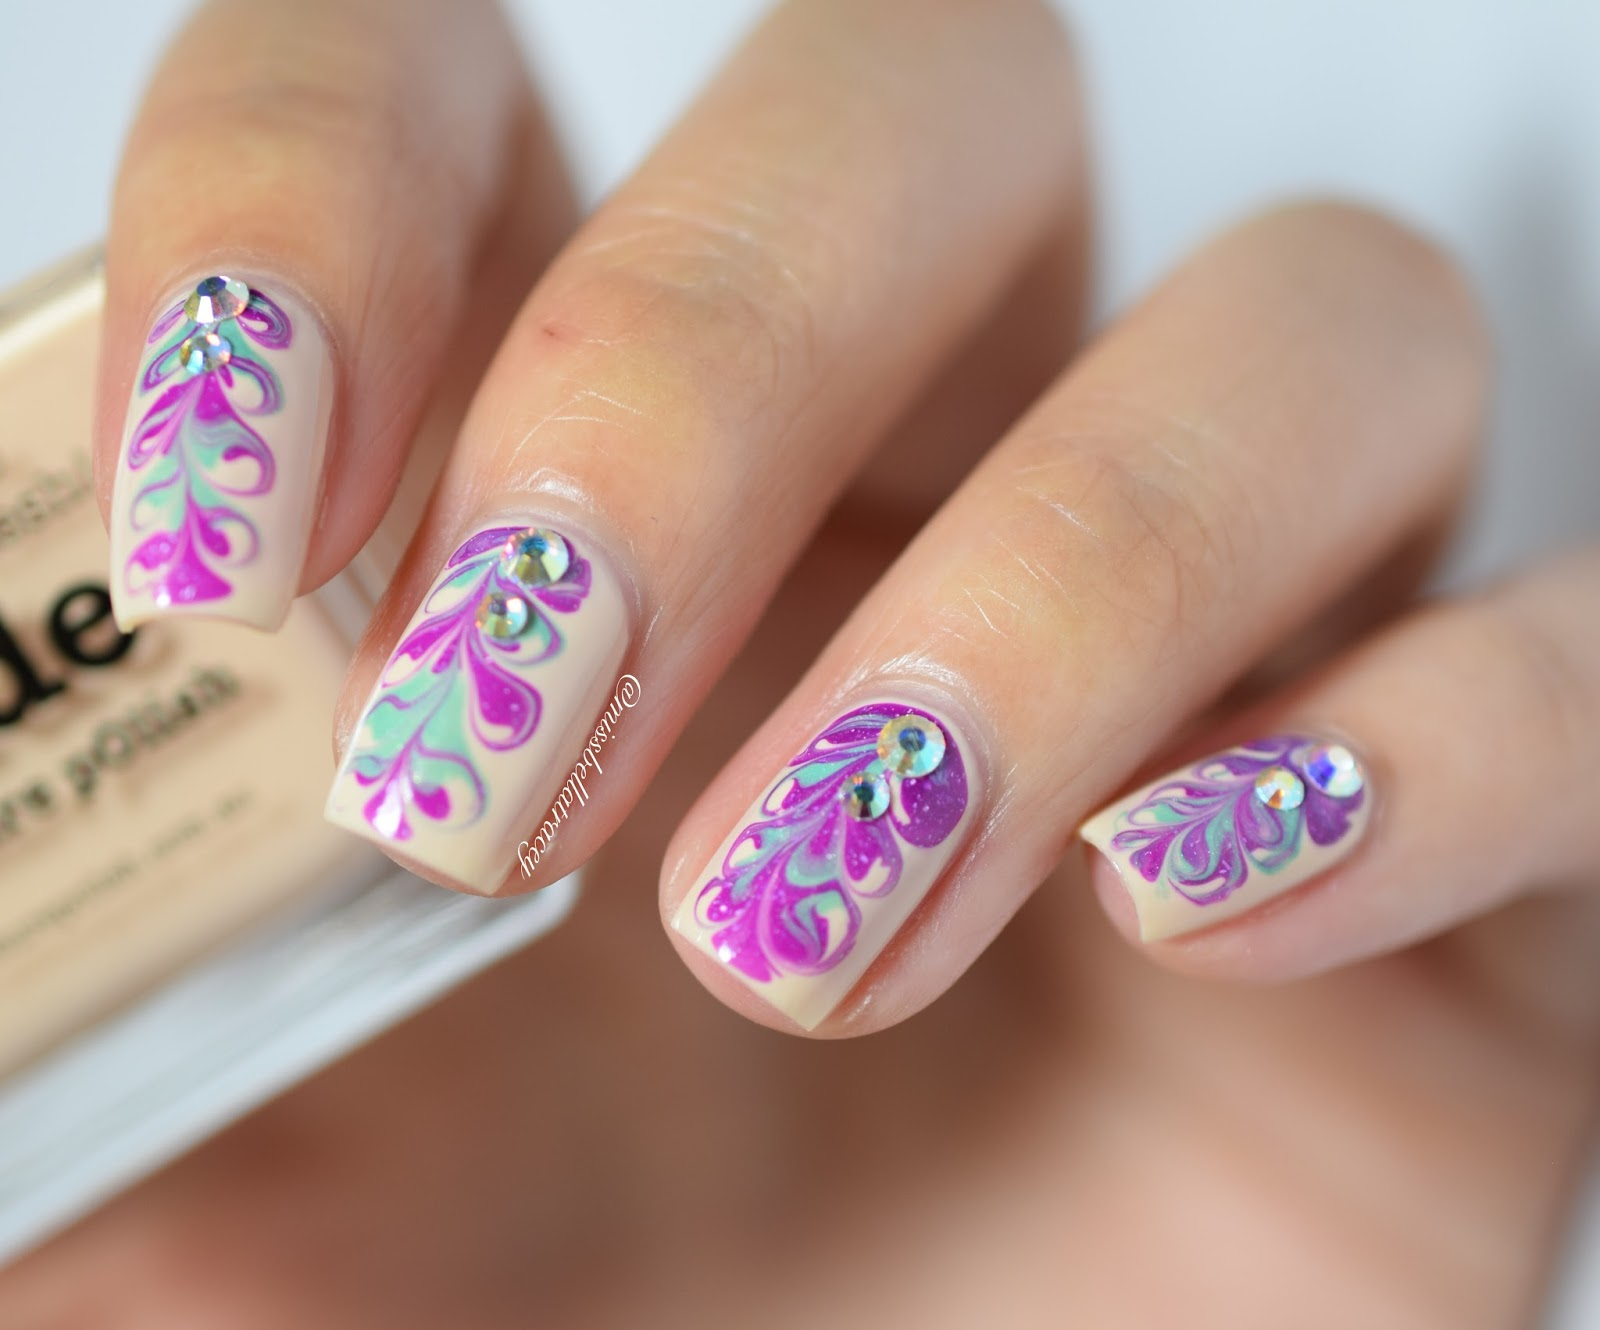 Missbellatracey wnac dry marble nail art the trick to this design is to make sure that you work with polishes that dont dry too quickly that way you have time to actually drag the polish before prinsesfo Gallery